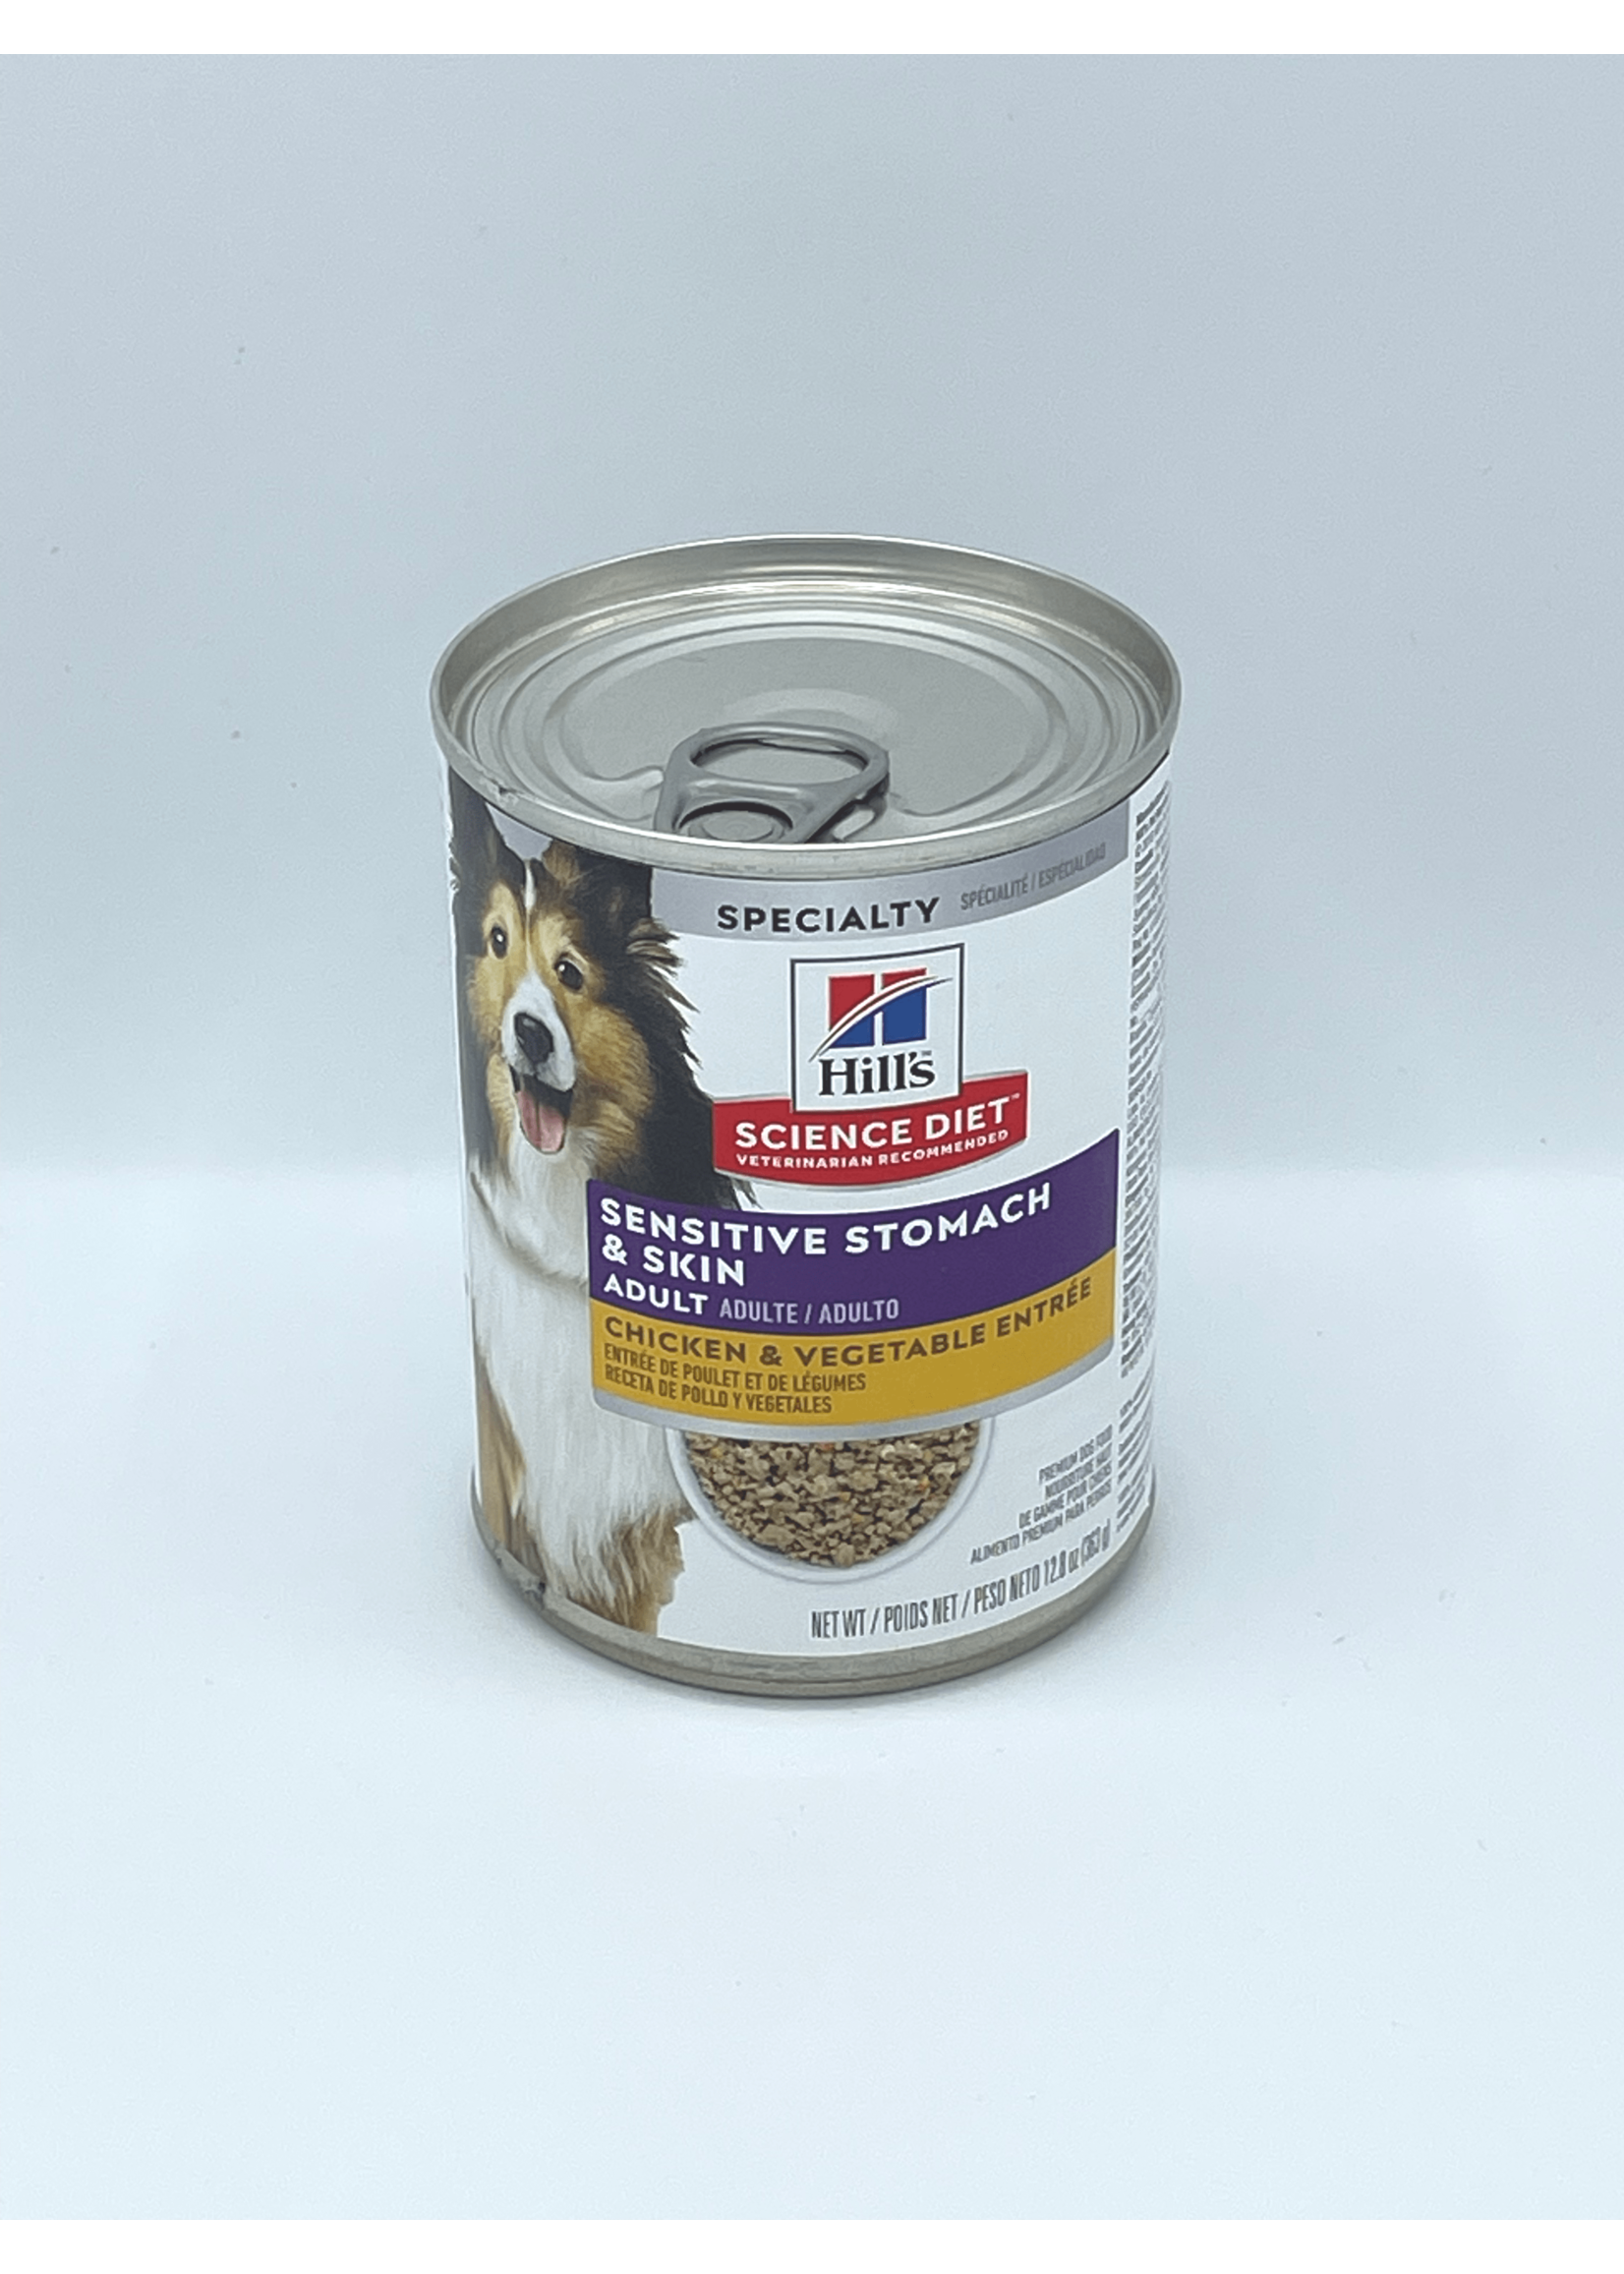 Hill's Science Diet Hill's Science Diet Adult Sensitive Stomach & Skin Chicken & Vegetable Entree, Dog Food, 12.8oz Cans